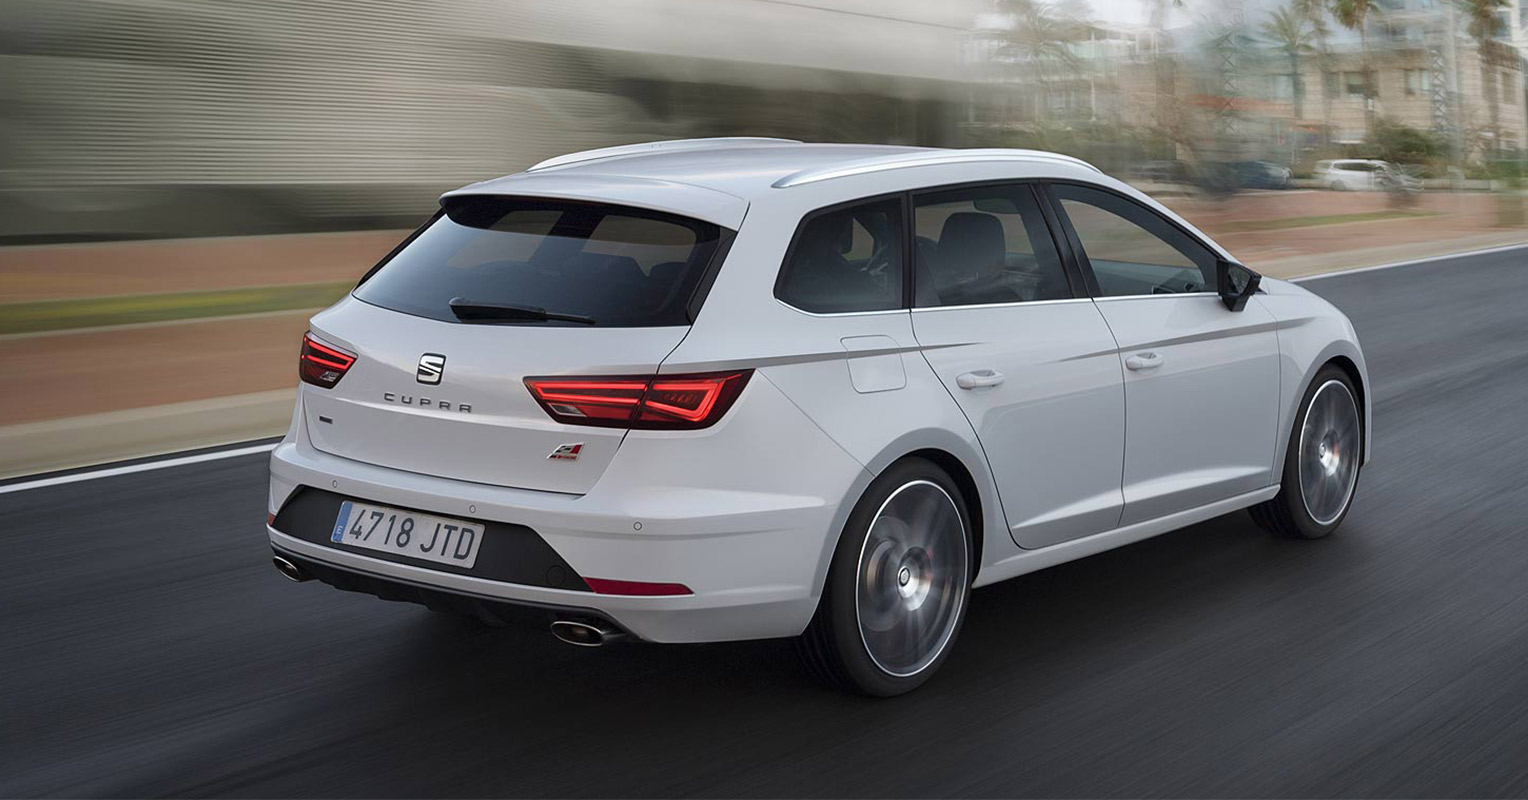 Trasera del SEAT León ST